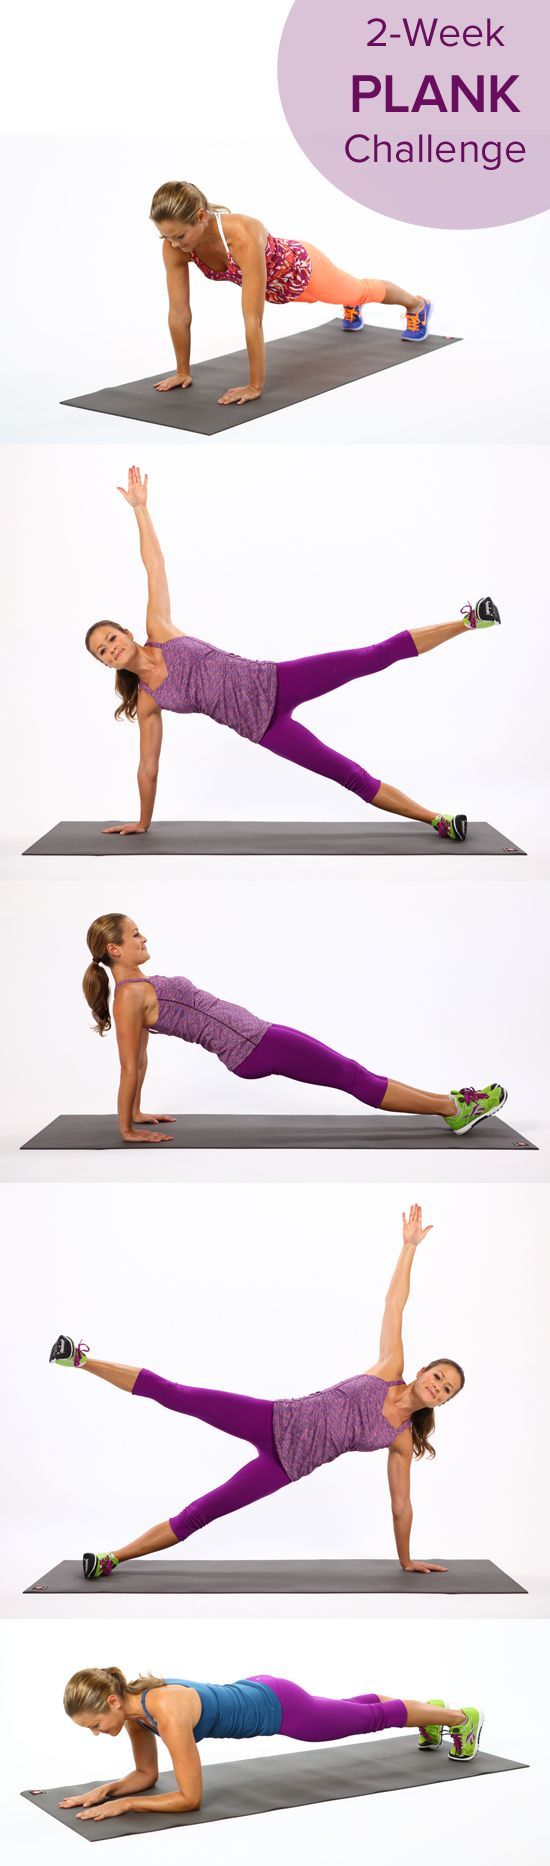 Build Up to a 5-Minute Plank